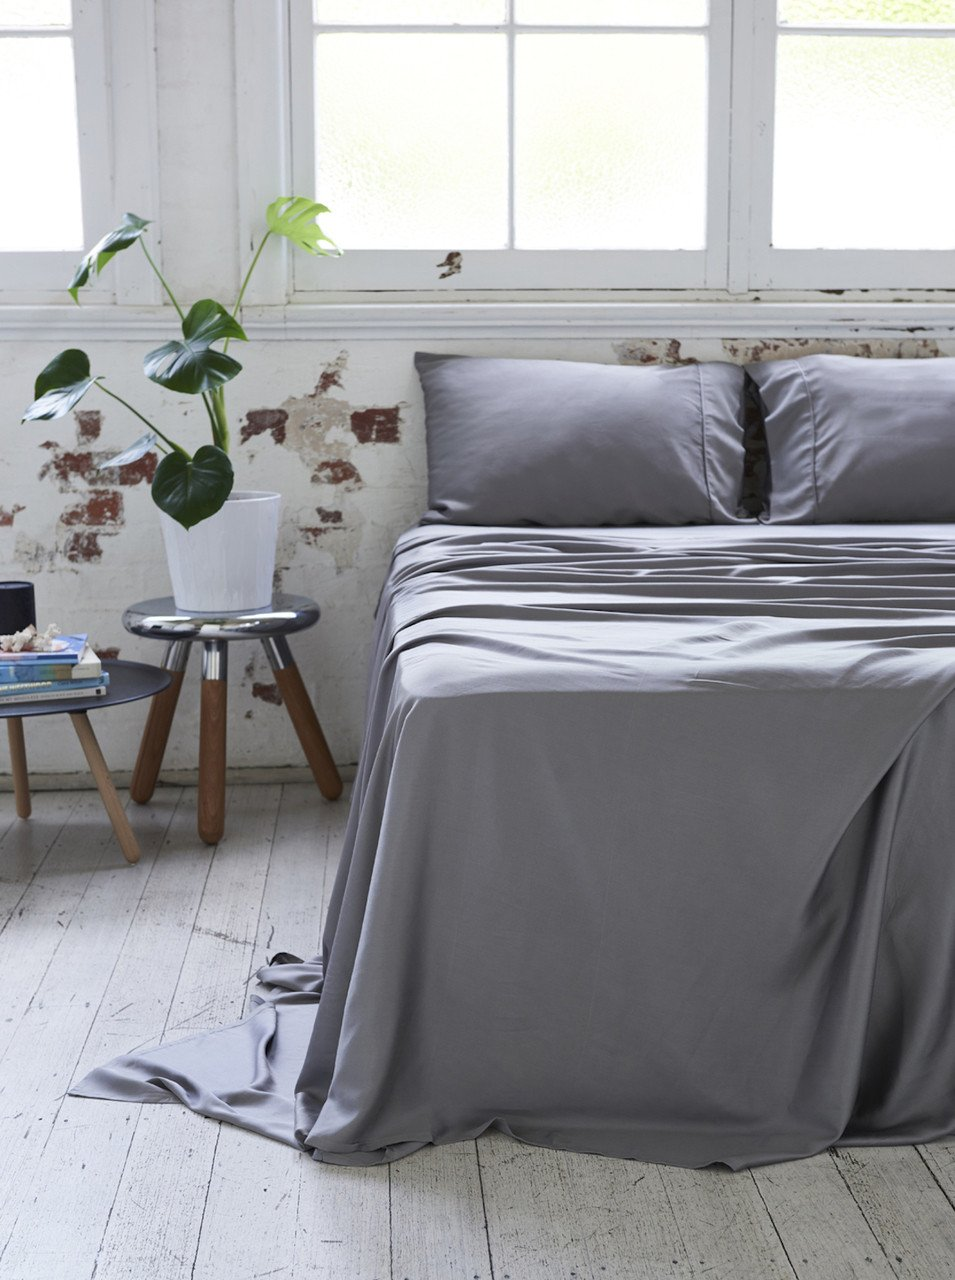 Ettitude Bamboo Sheet Set in Charcoal $200